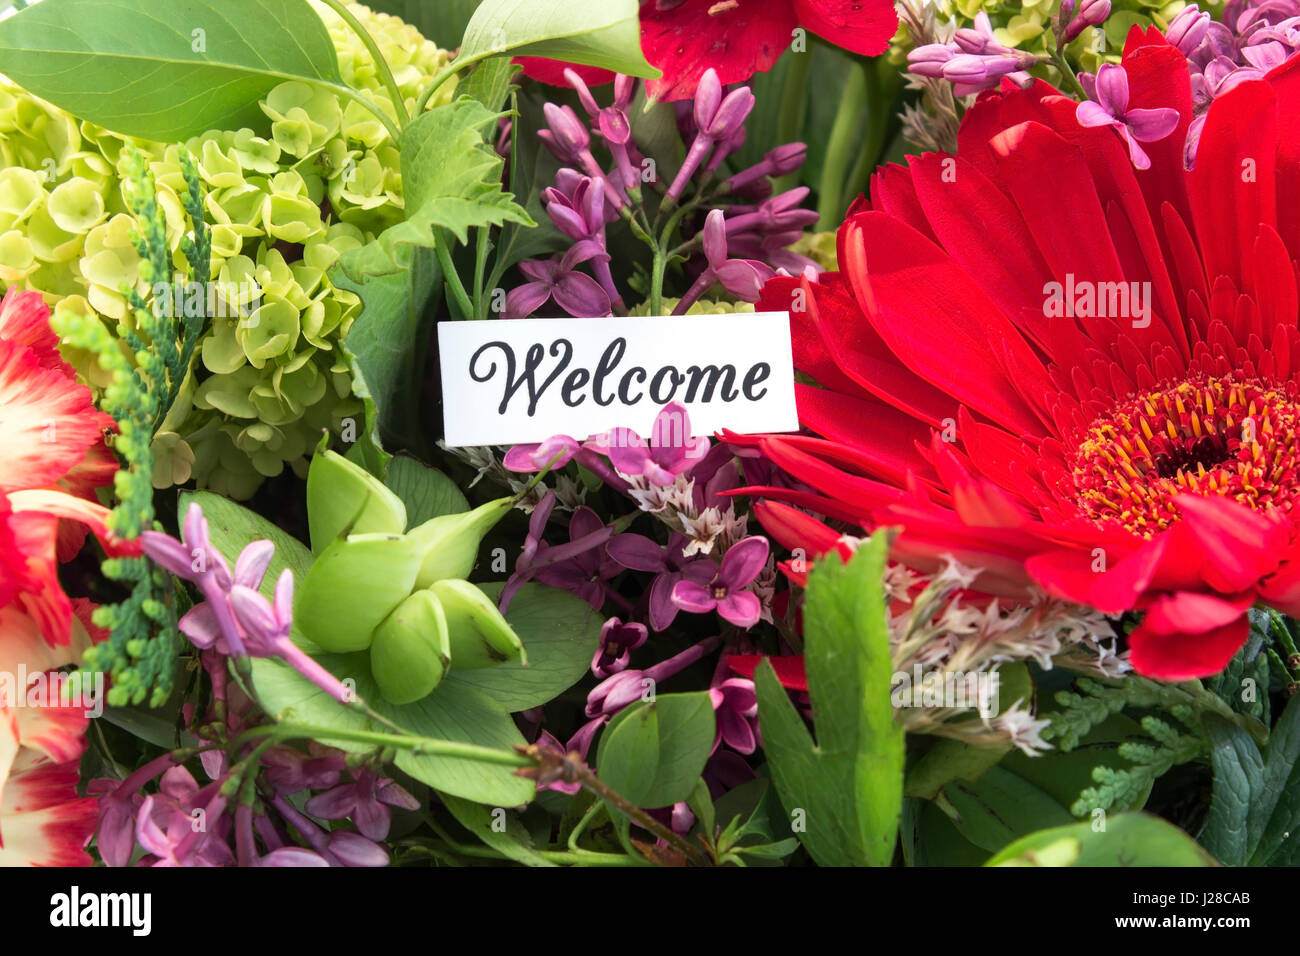 Welcome Flowers Bouquet Stock Photos Welcome Flowers Bouquet Stock